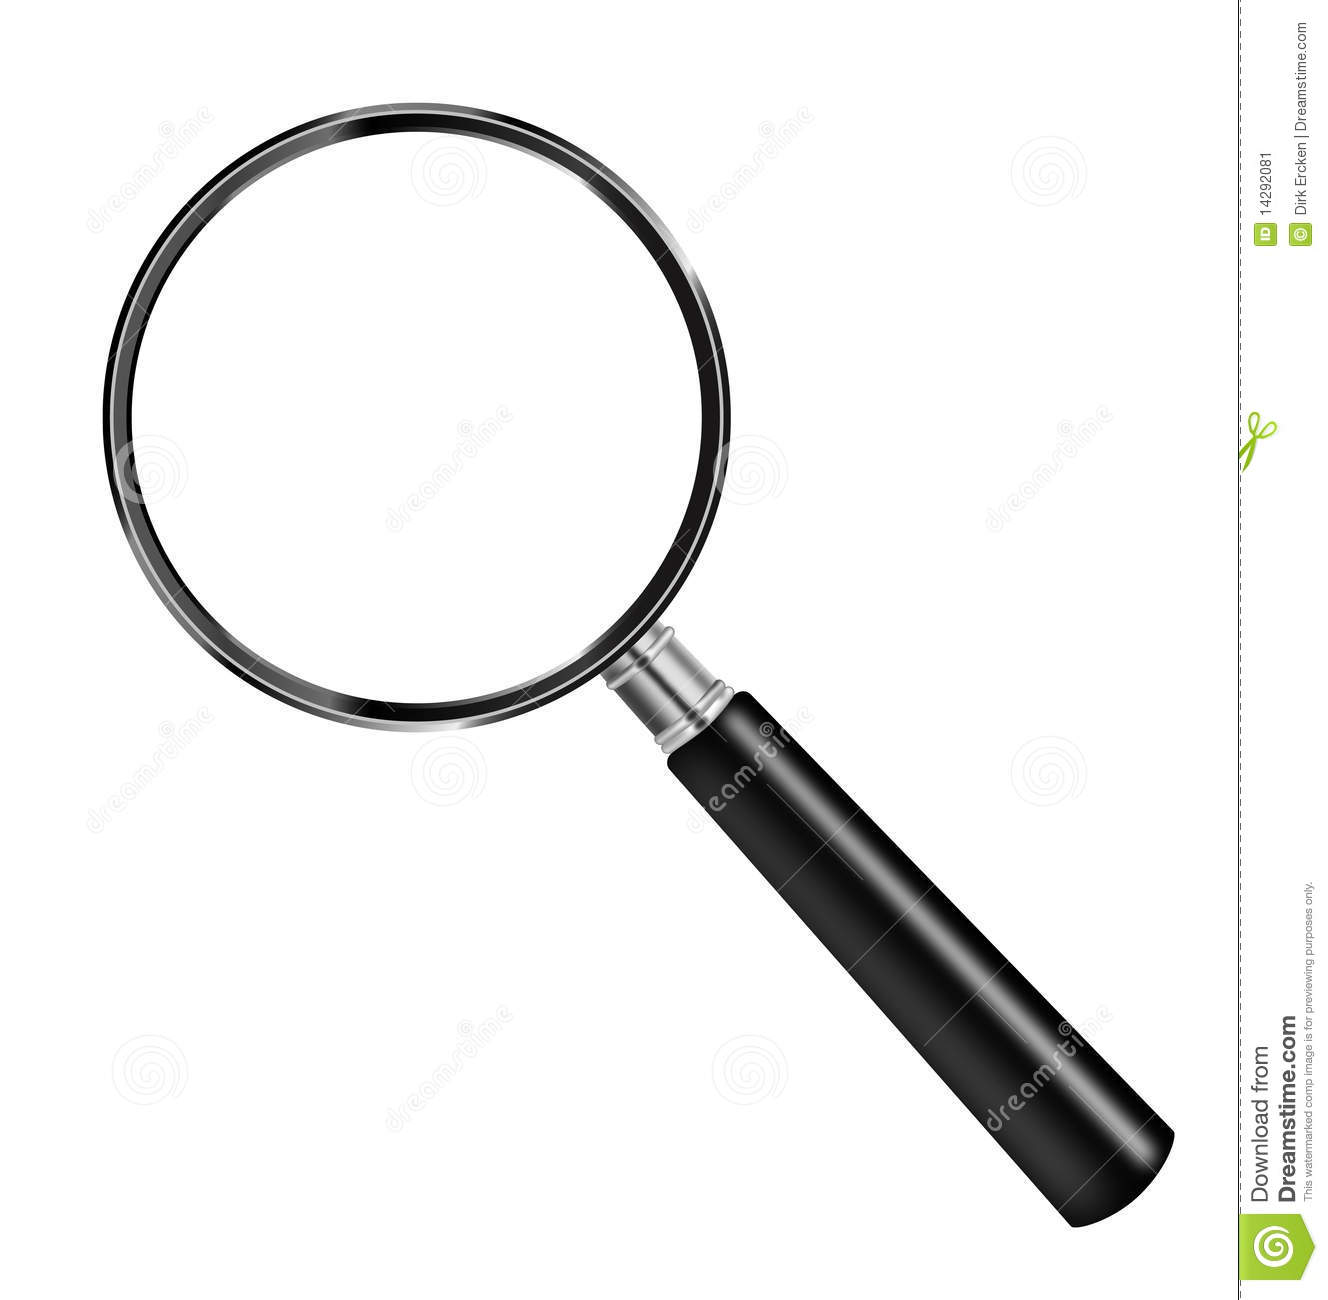 Magnifying glass looking lens magnify isolated